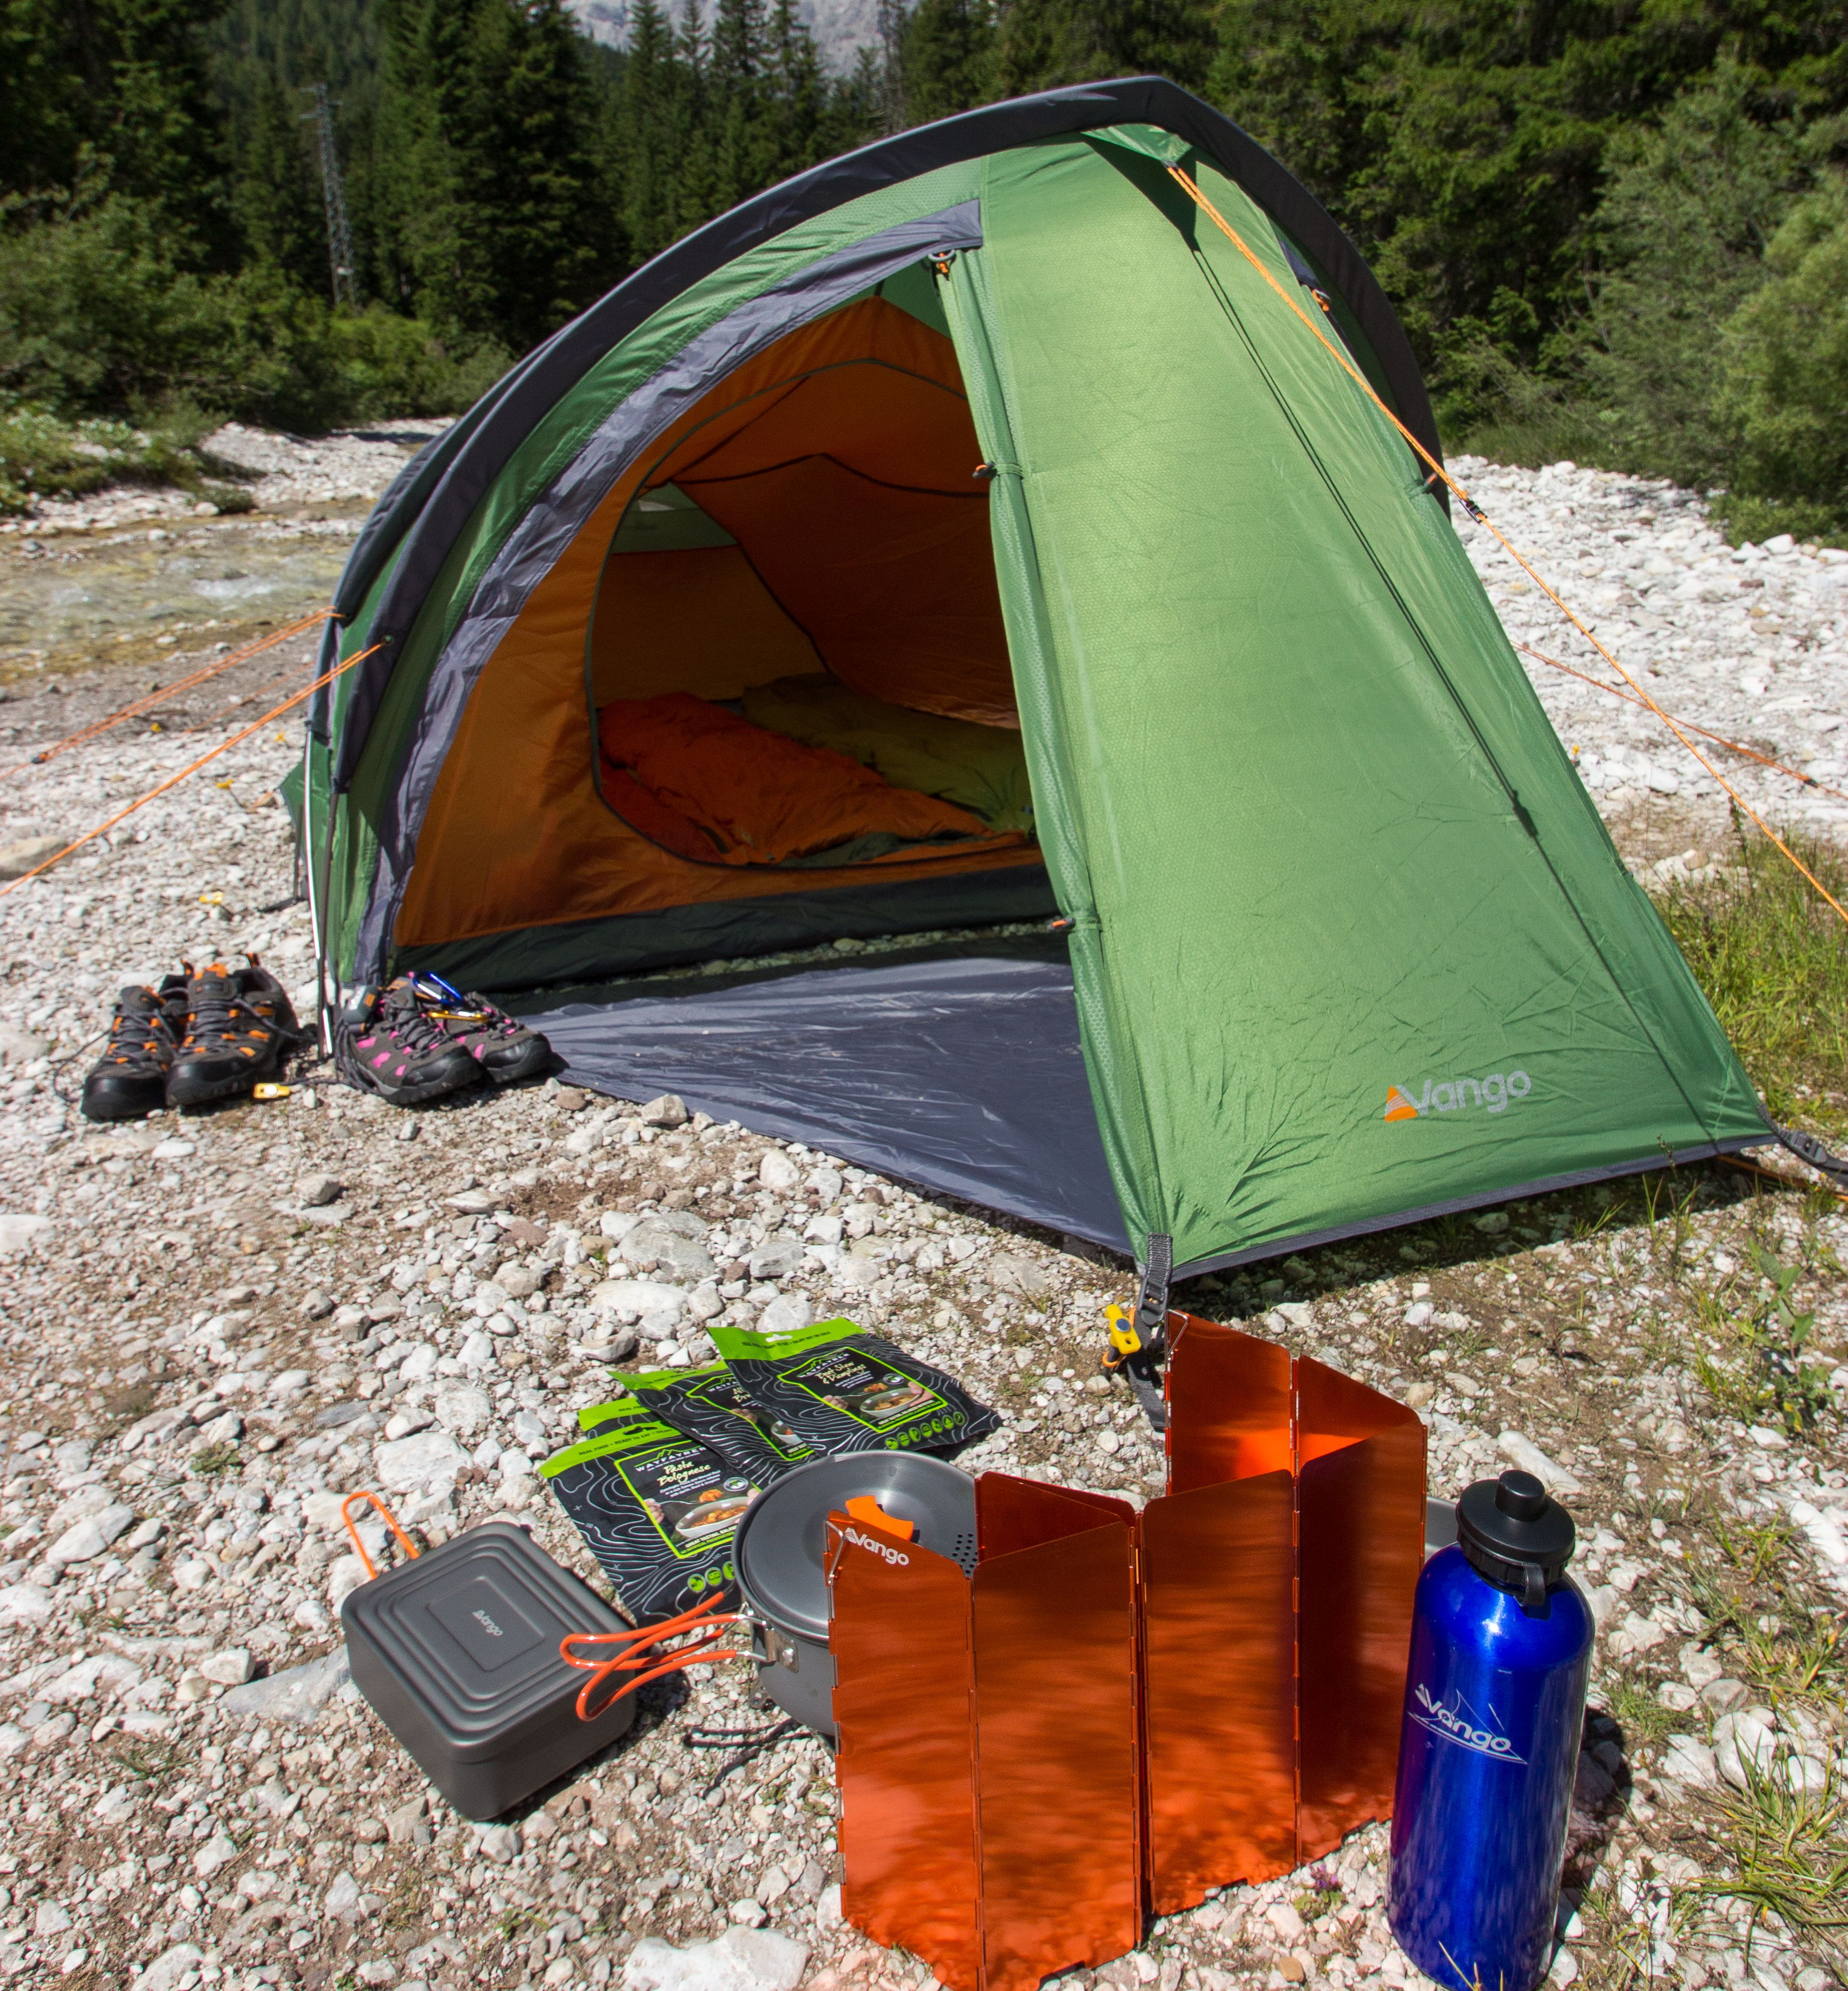 Camping and expedition food